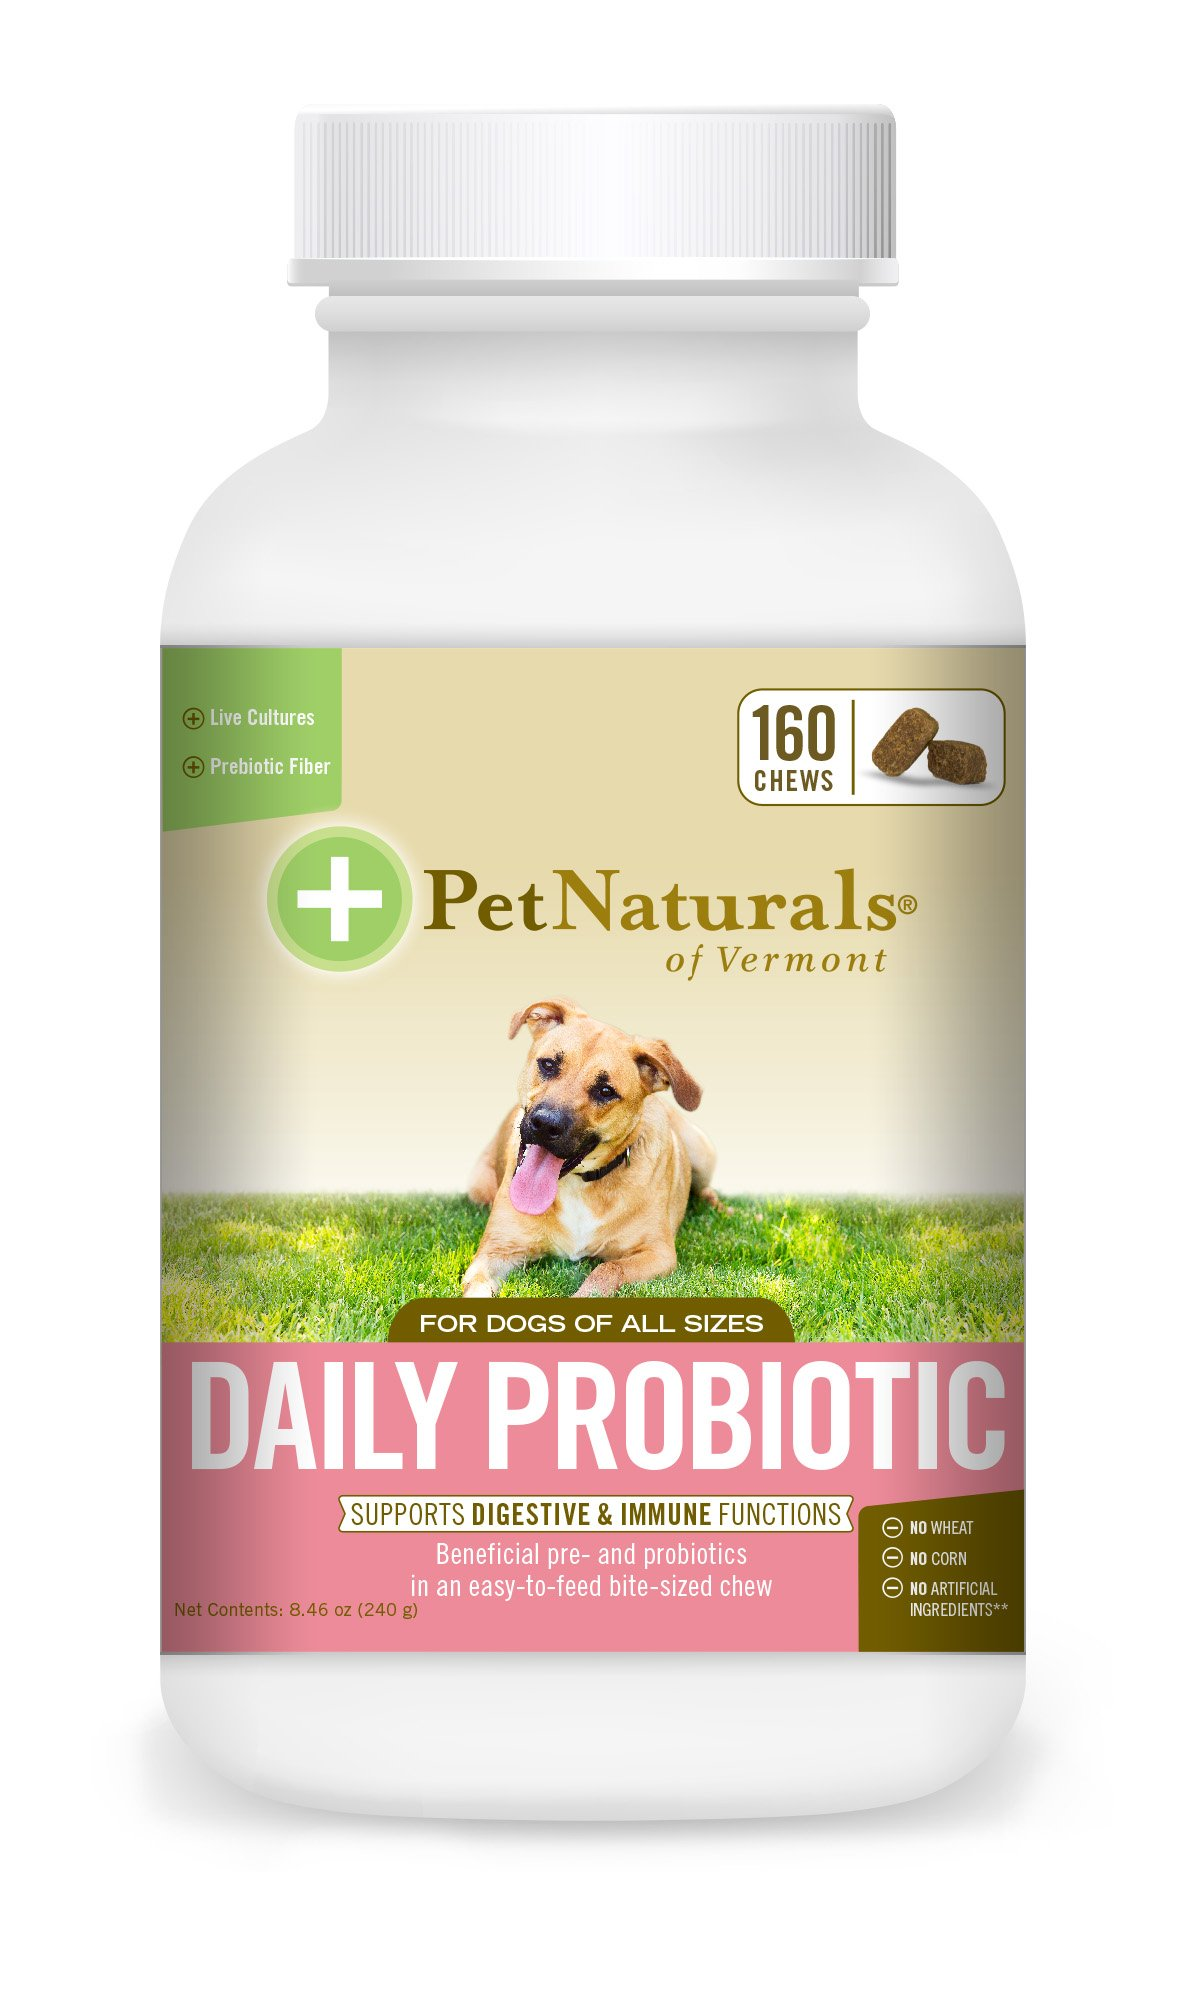 Pet Naturals of Vermont - Daily Probiotic for Dogs, Digestive Health Supplement, 160 Bite Sized Chews